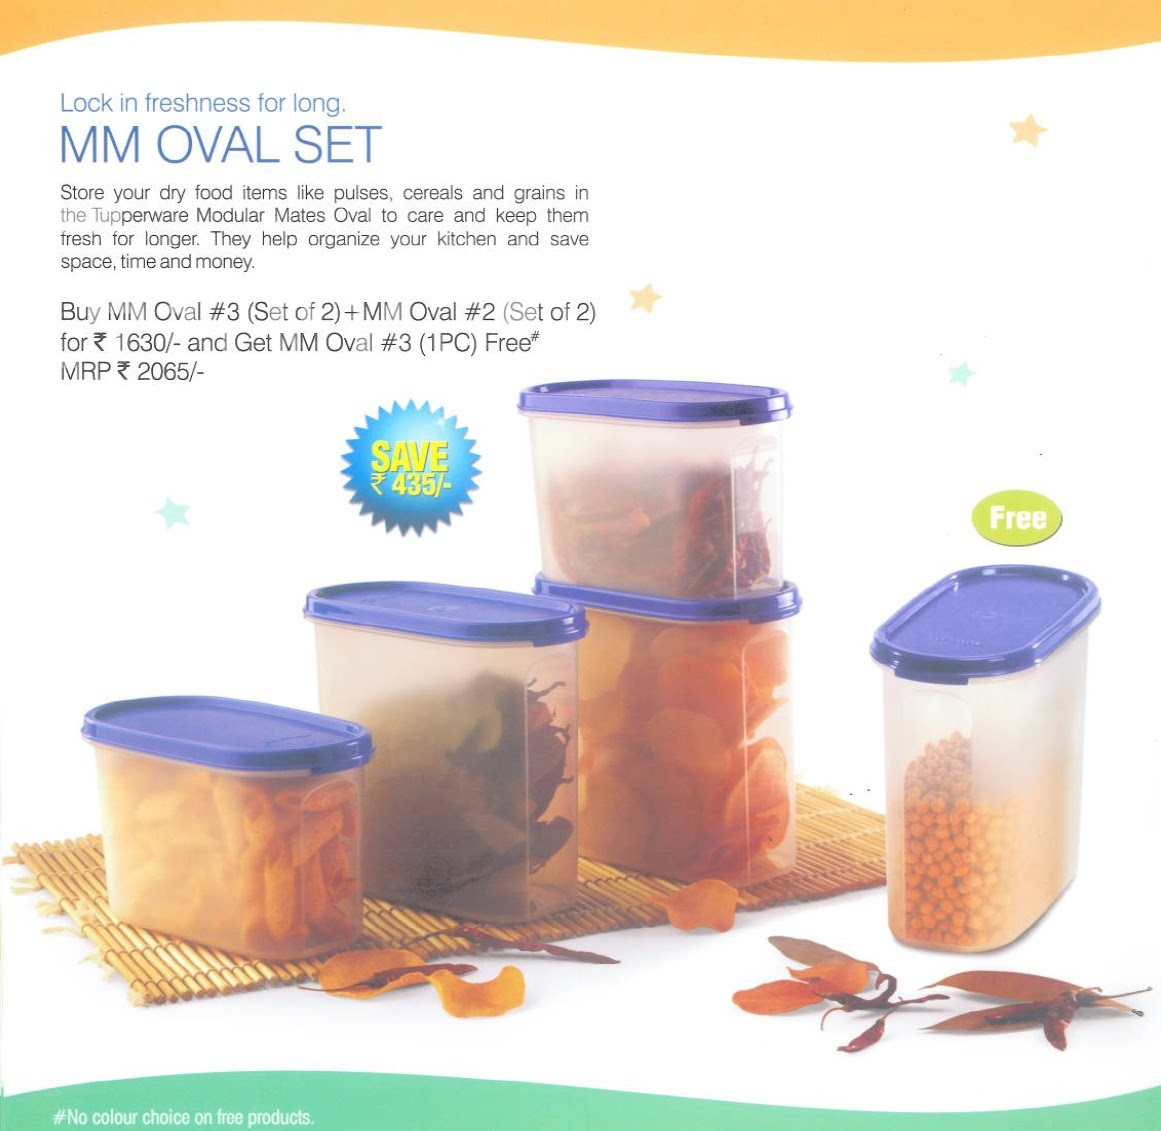 TUPPERWARE PRODUCTS: TUPPERWARE FLYER AUG 2013